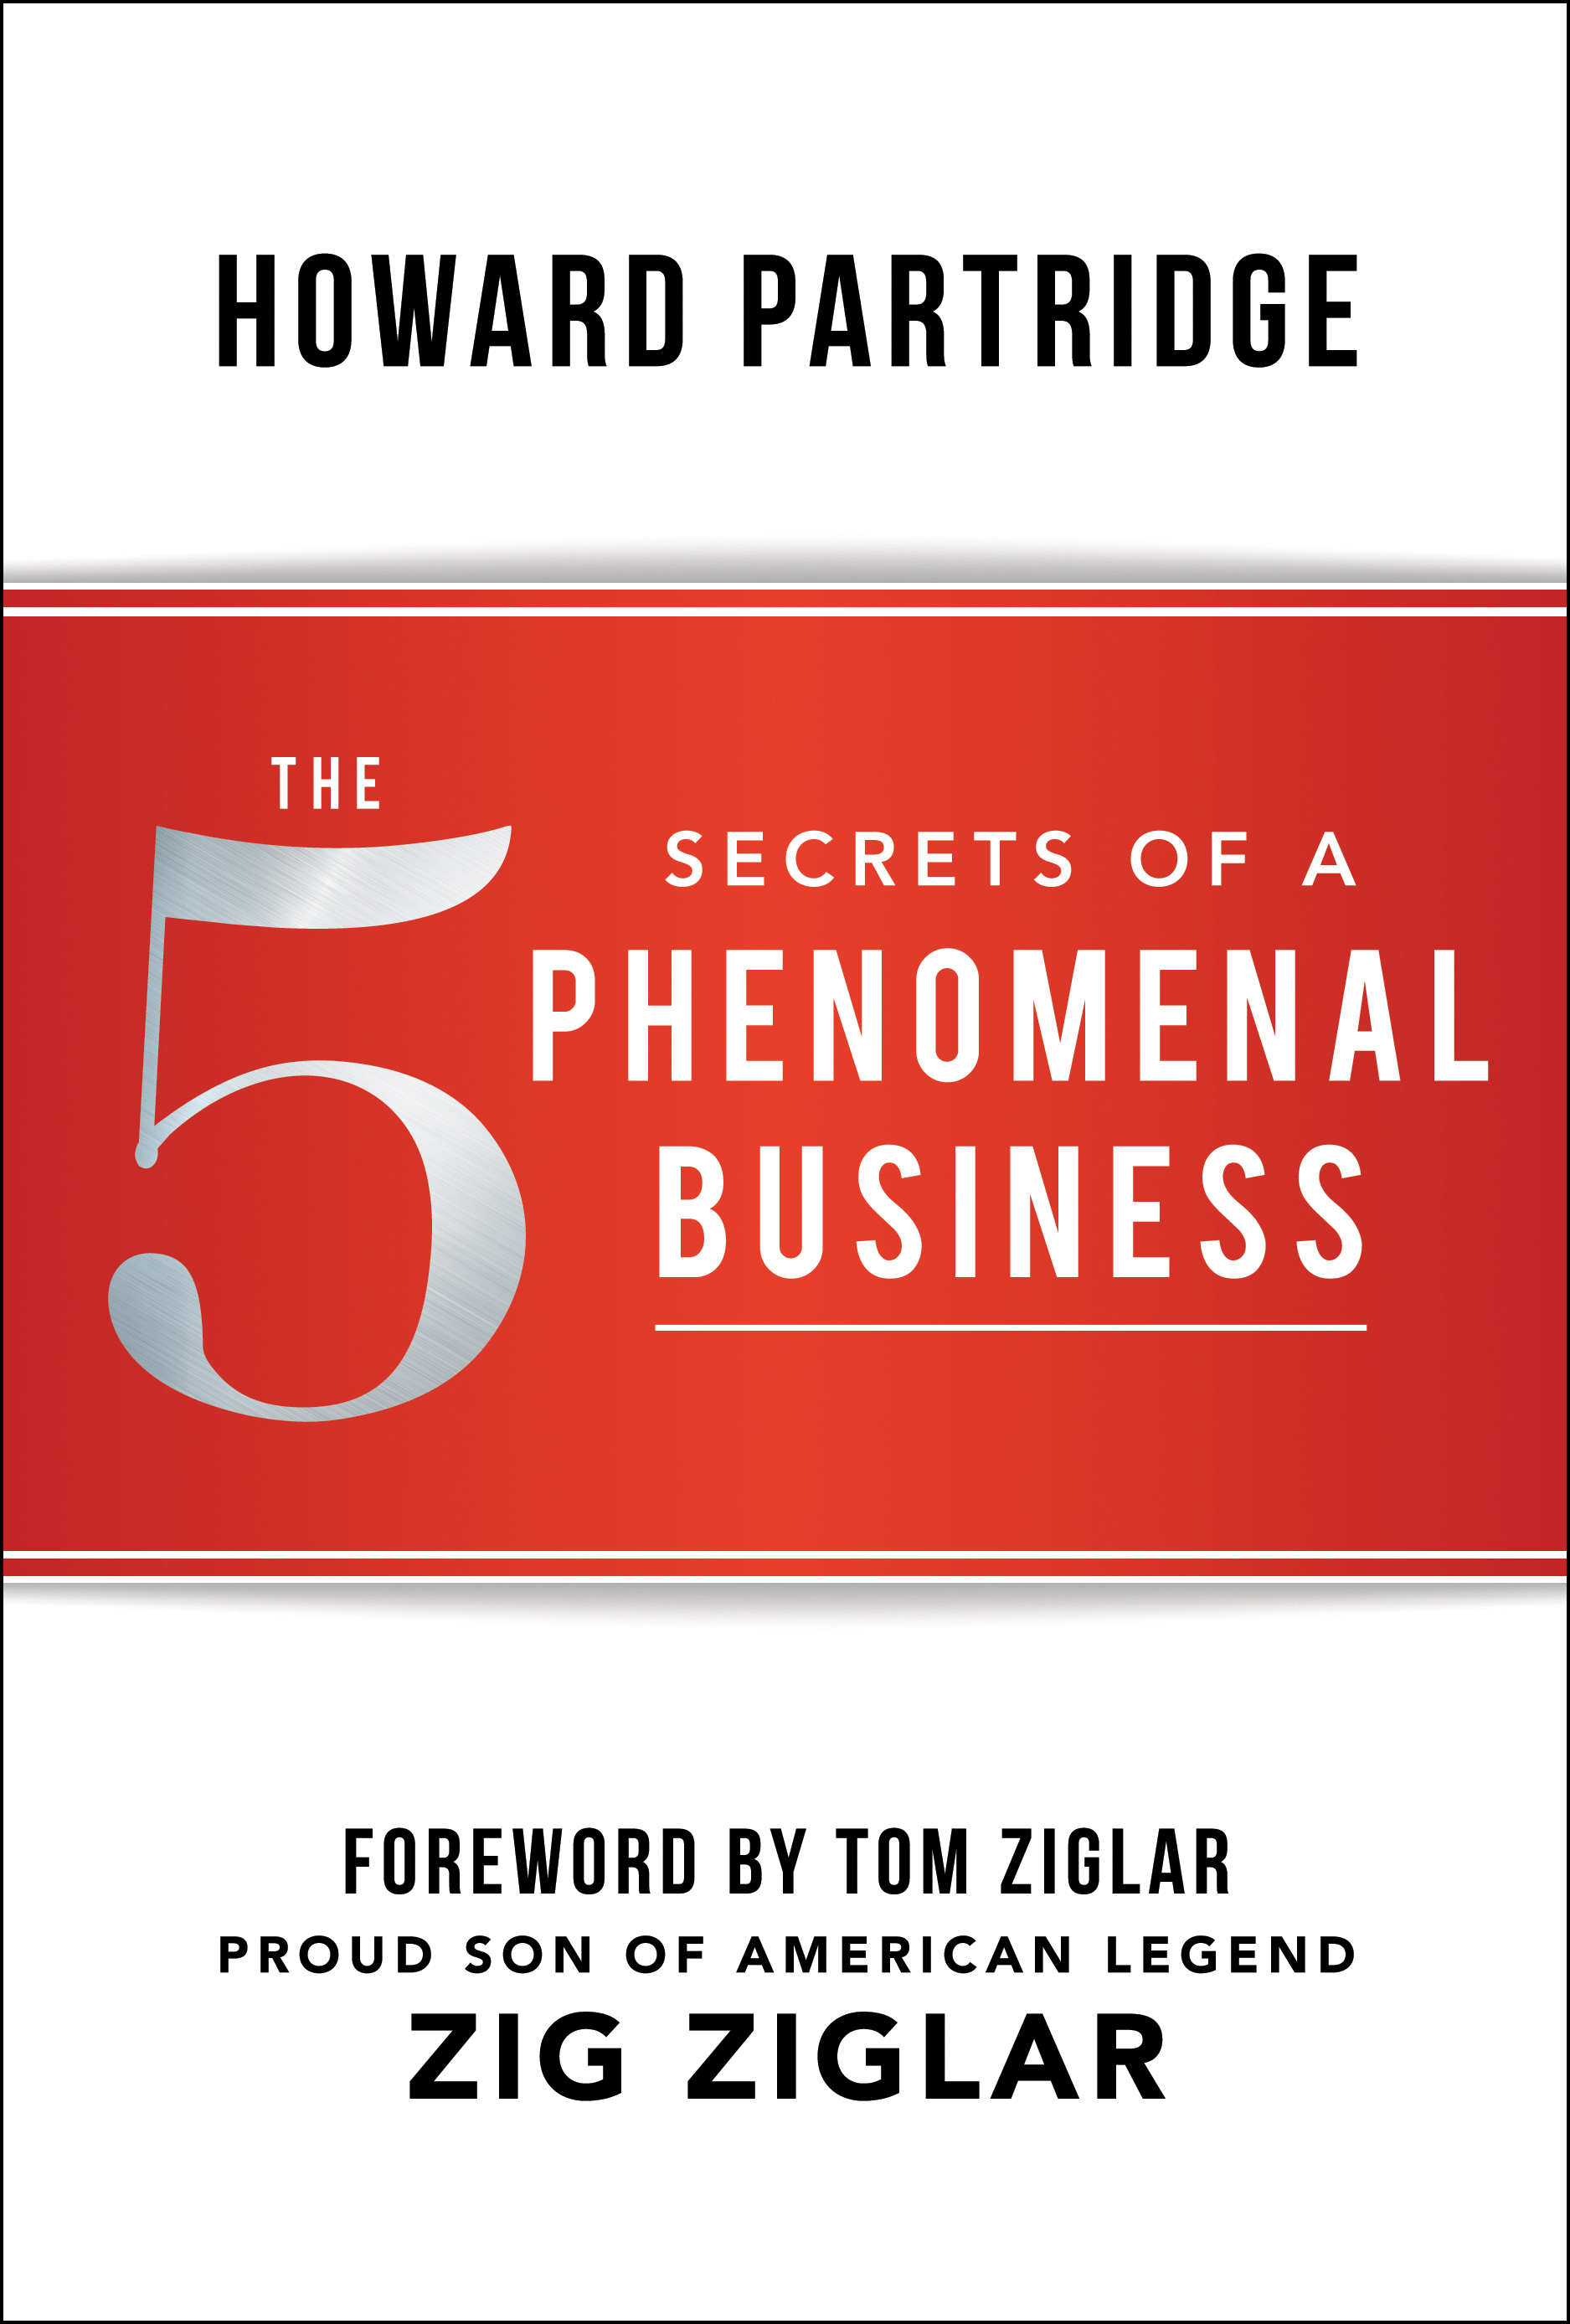 The 5 Secrets of a Phenomenal Business - Howard Partridge